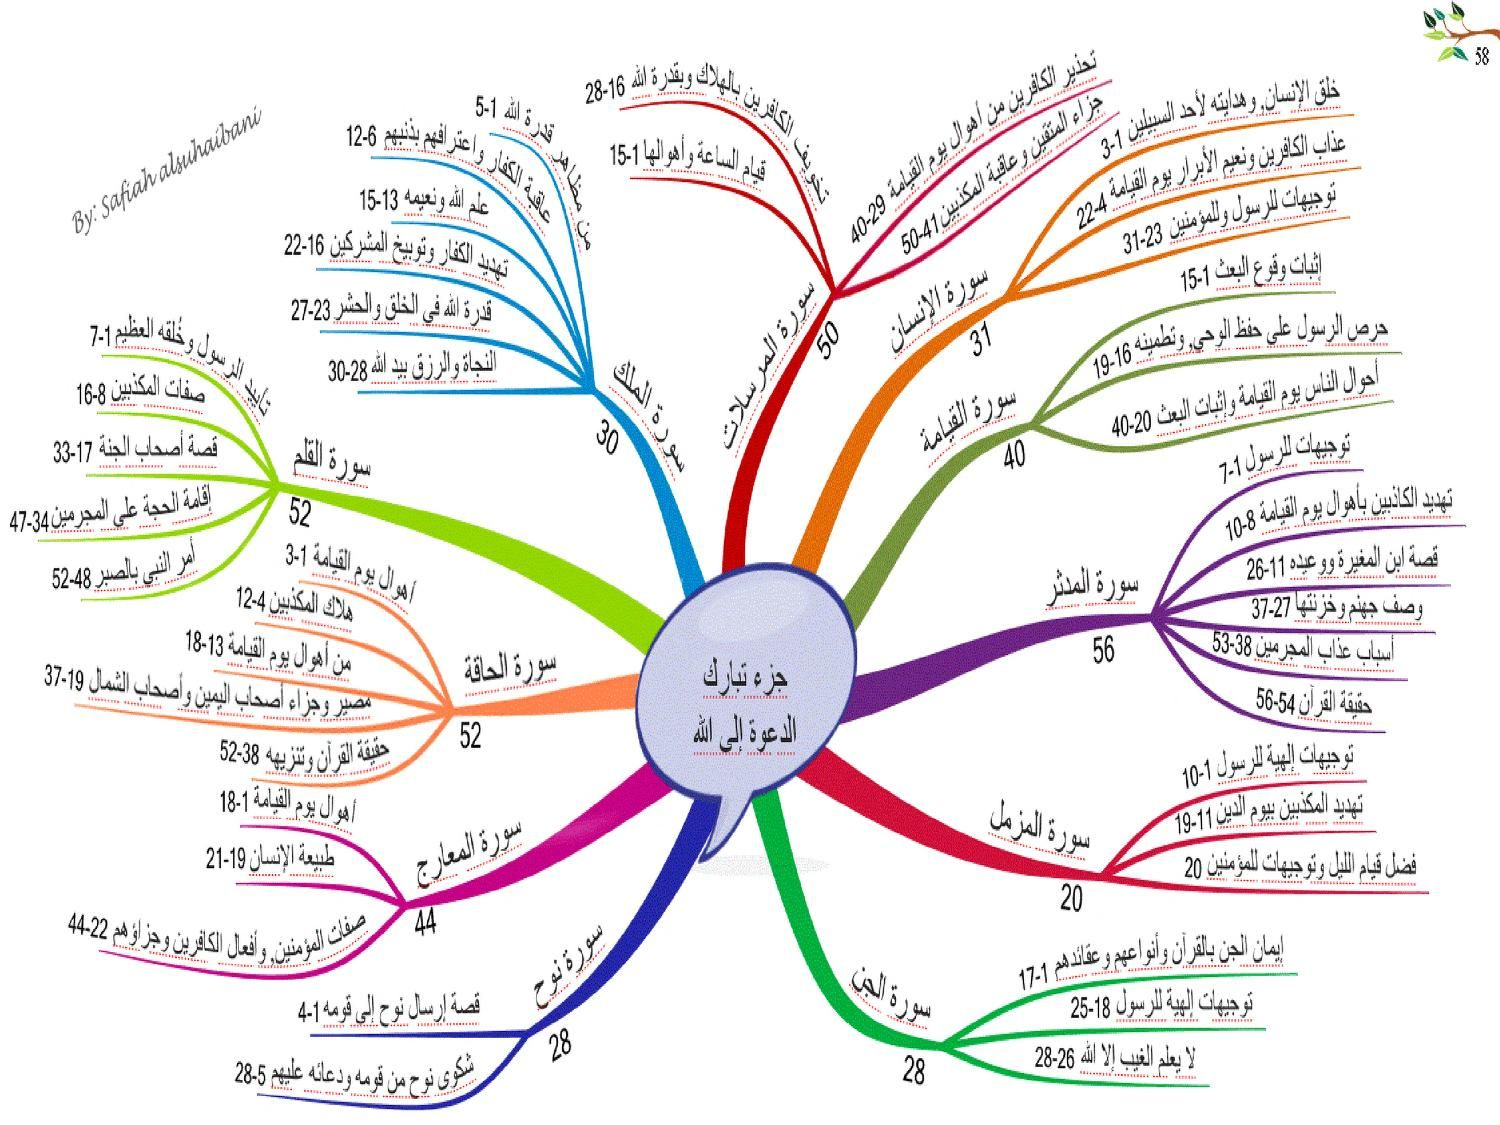 Quran Mind Maps Free Download Borrow And Streaming Internet Archive Quran Tajweed Quran Mind Map